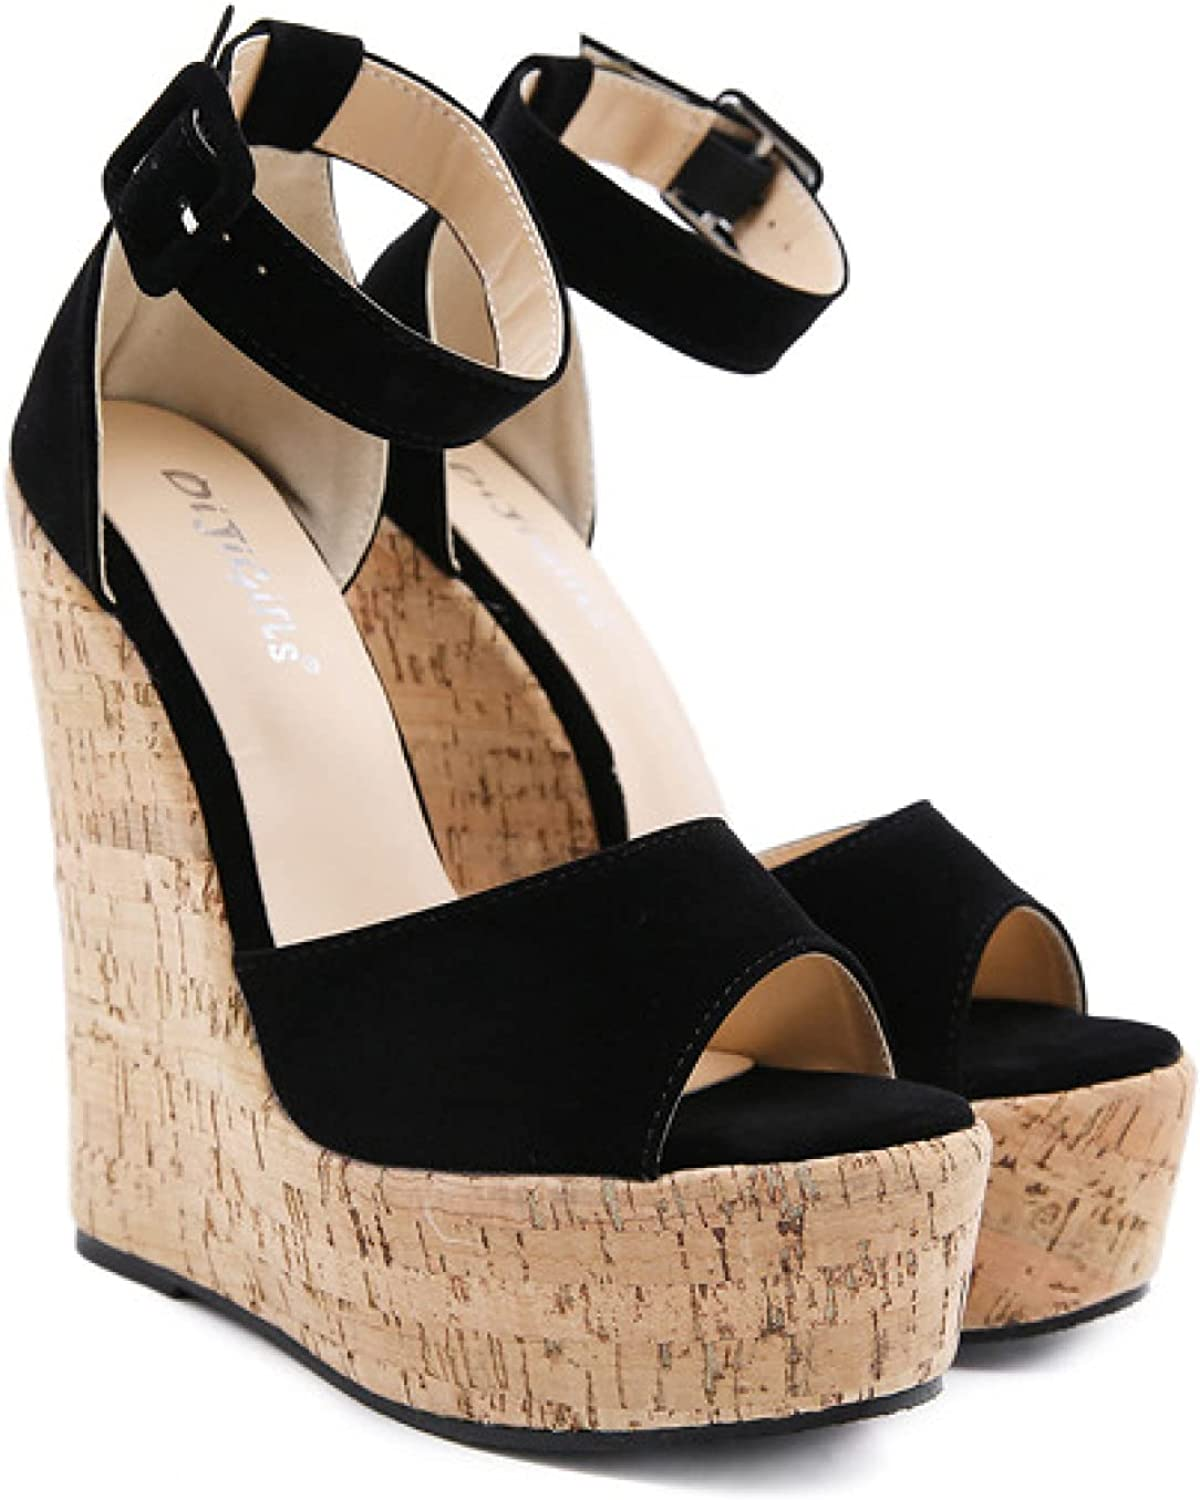 Fashion Thick Platform Wedge Sandal for Womens Cozy Leather Open Toe High Heeled Buckle Strap Dance Shoes Nightclub